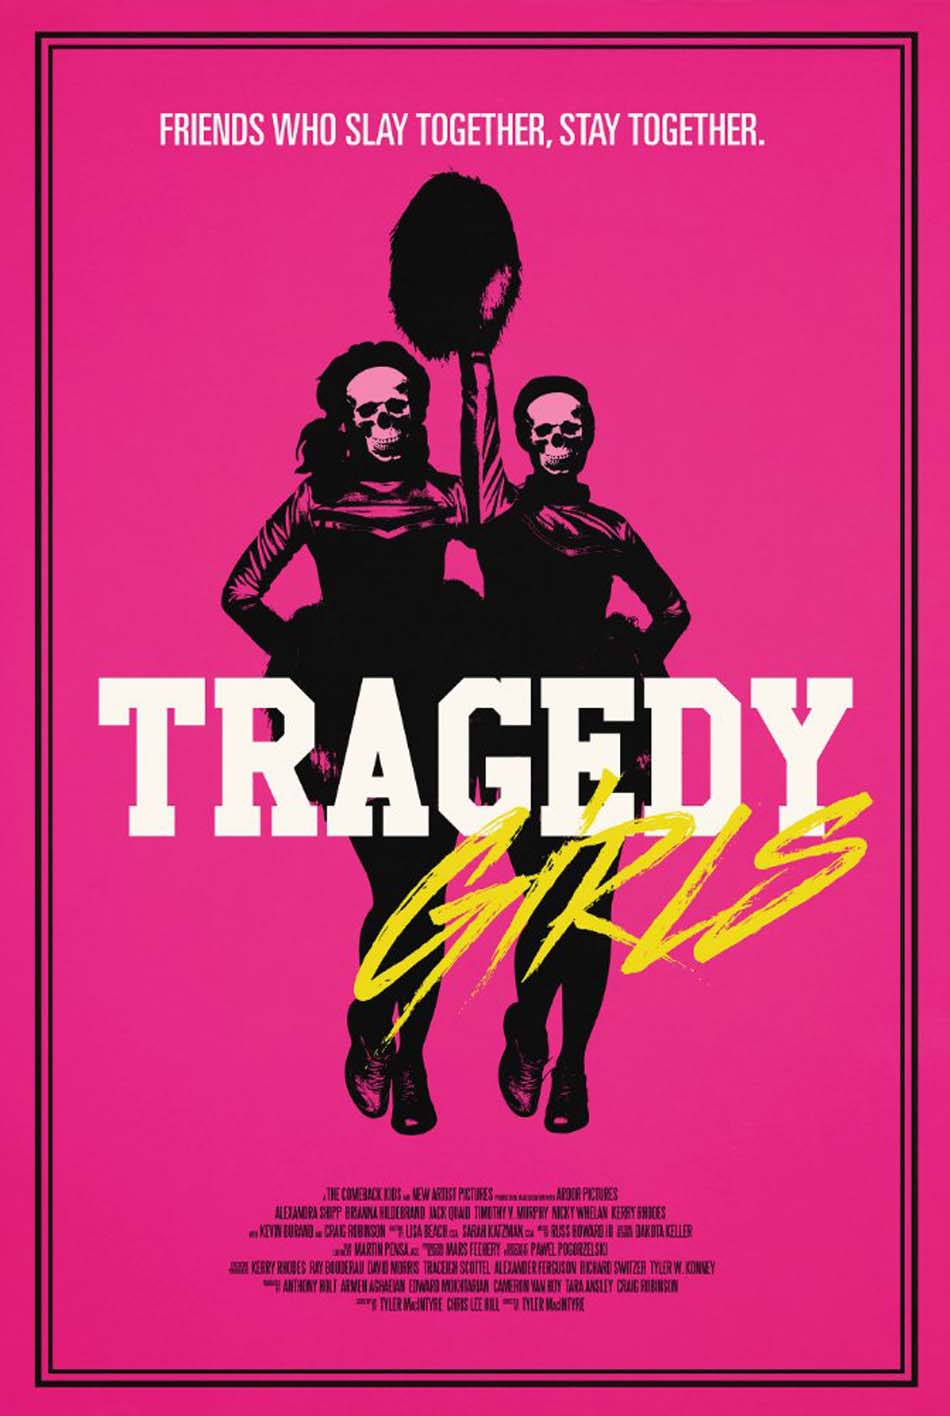 scream-meets-heathers-in-a-social-media-era-in-trailer-for-the-horror-teen-comedy-tragedy-girls1